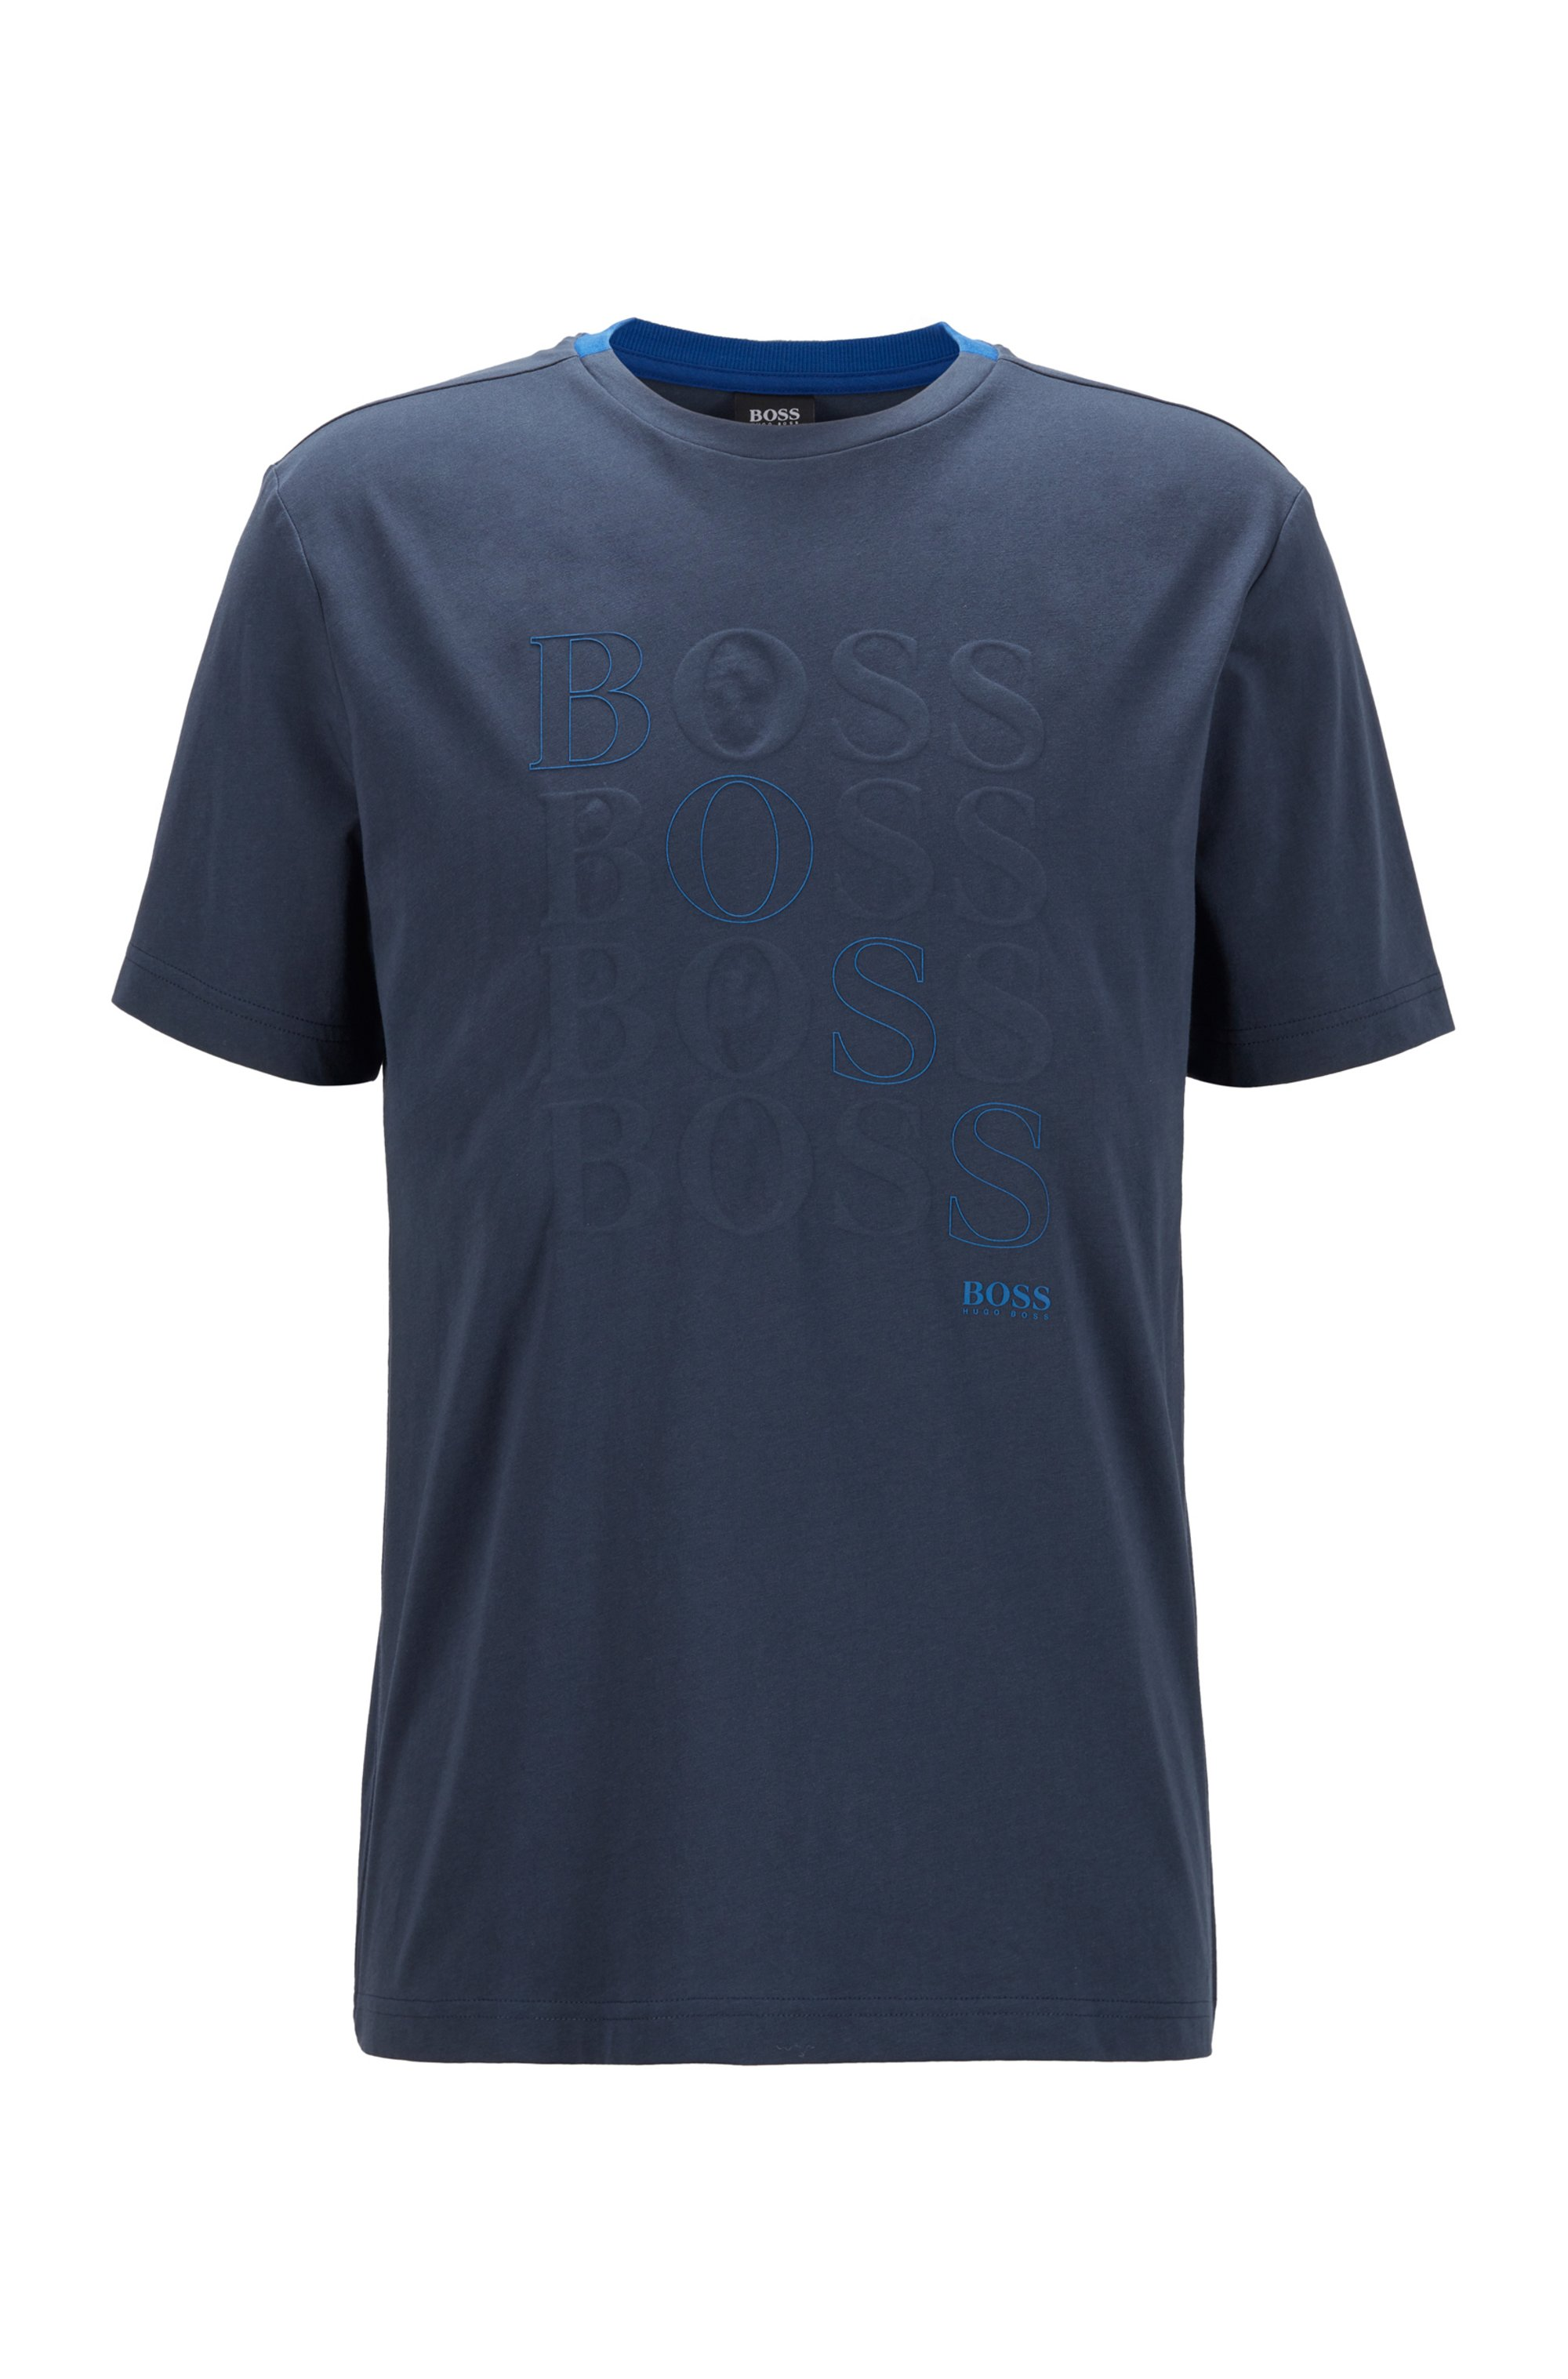 Regular-fit logo T-shirt in Bionic® single jersey, Dark Blue